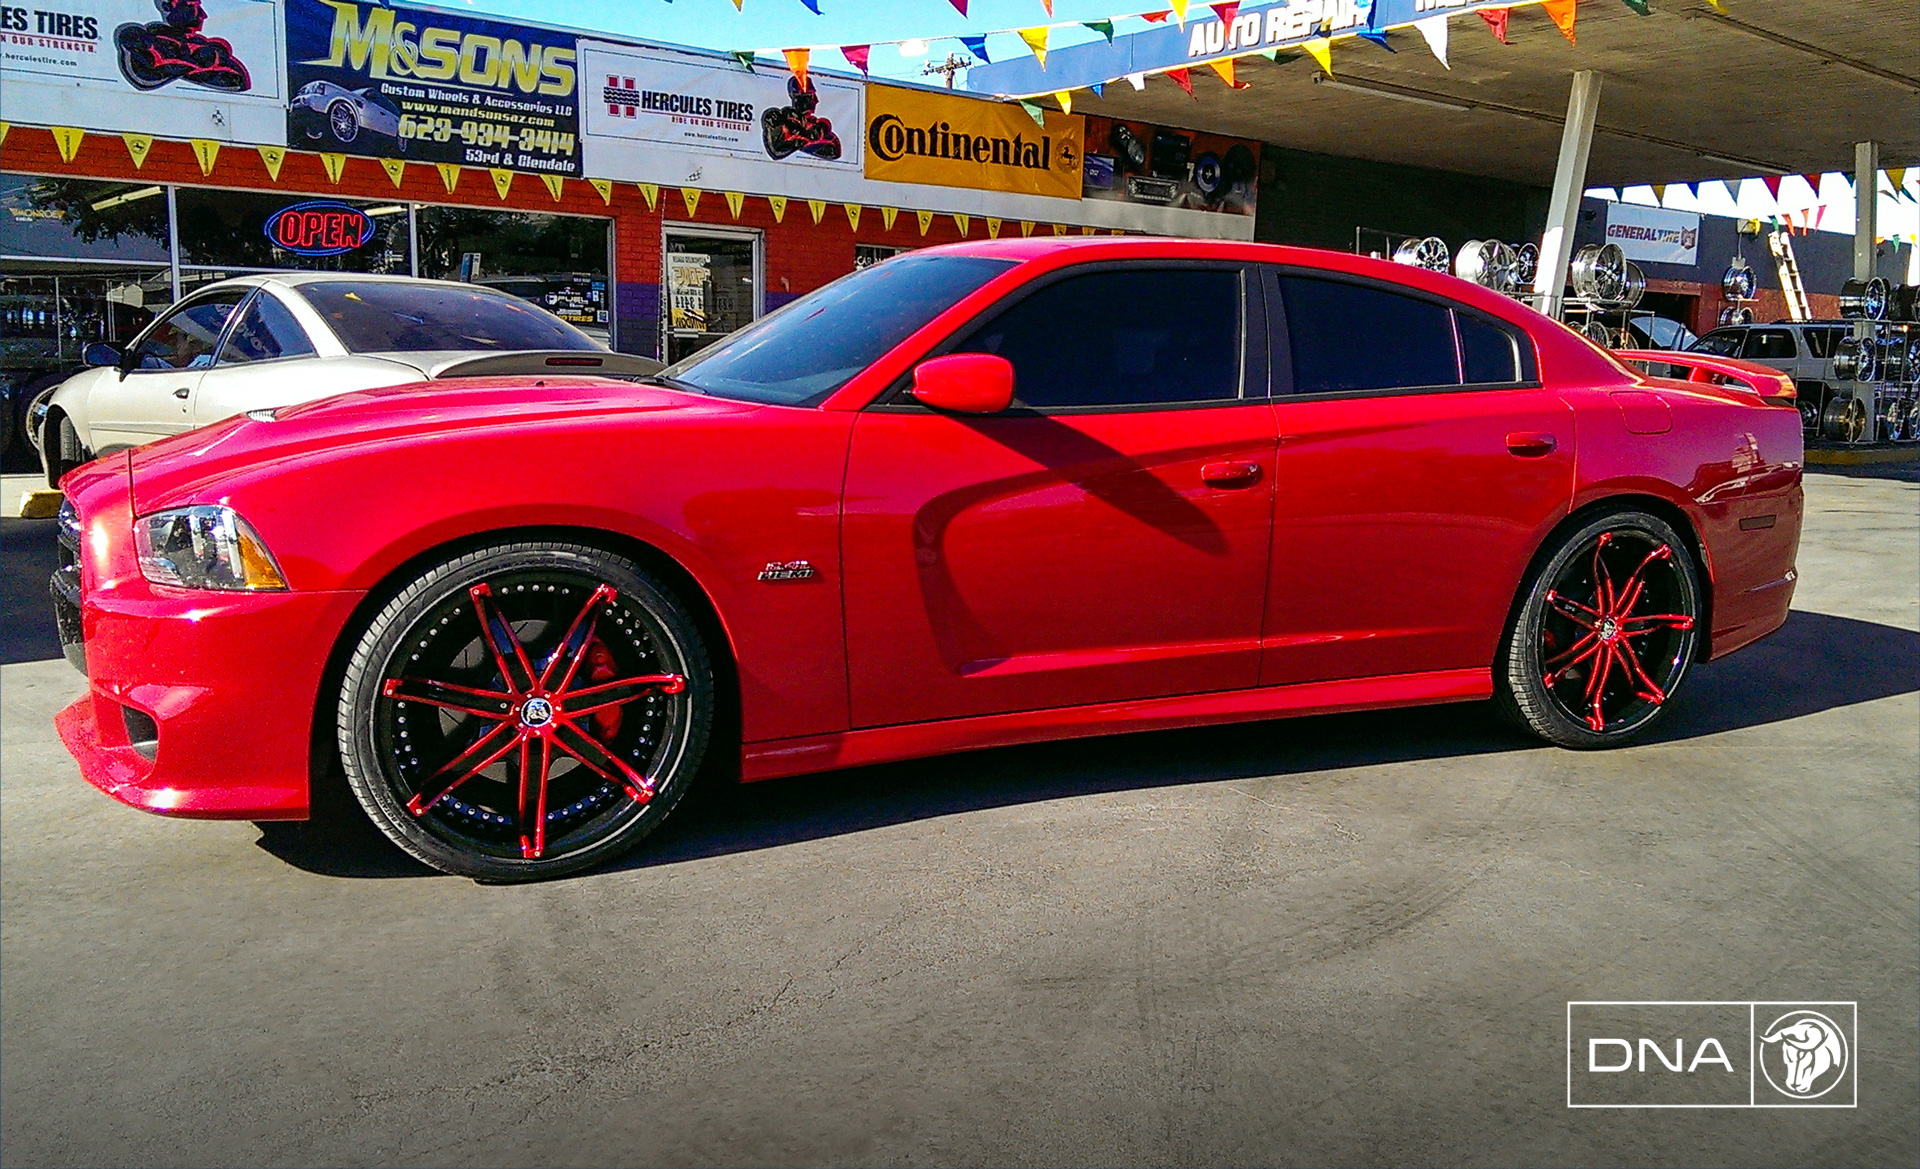 Diablo Wheels - DNA on a Dodge Charger